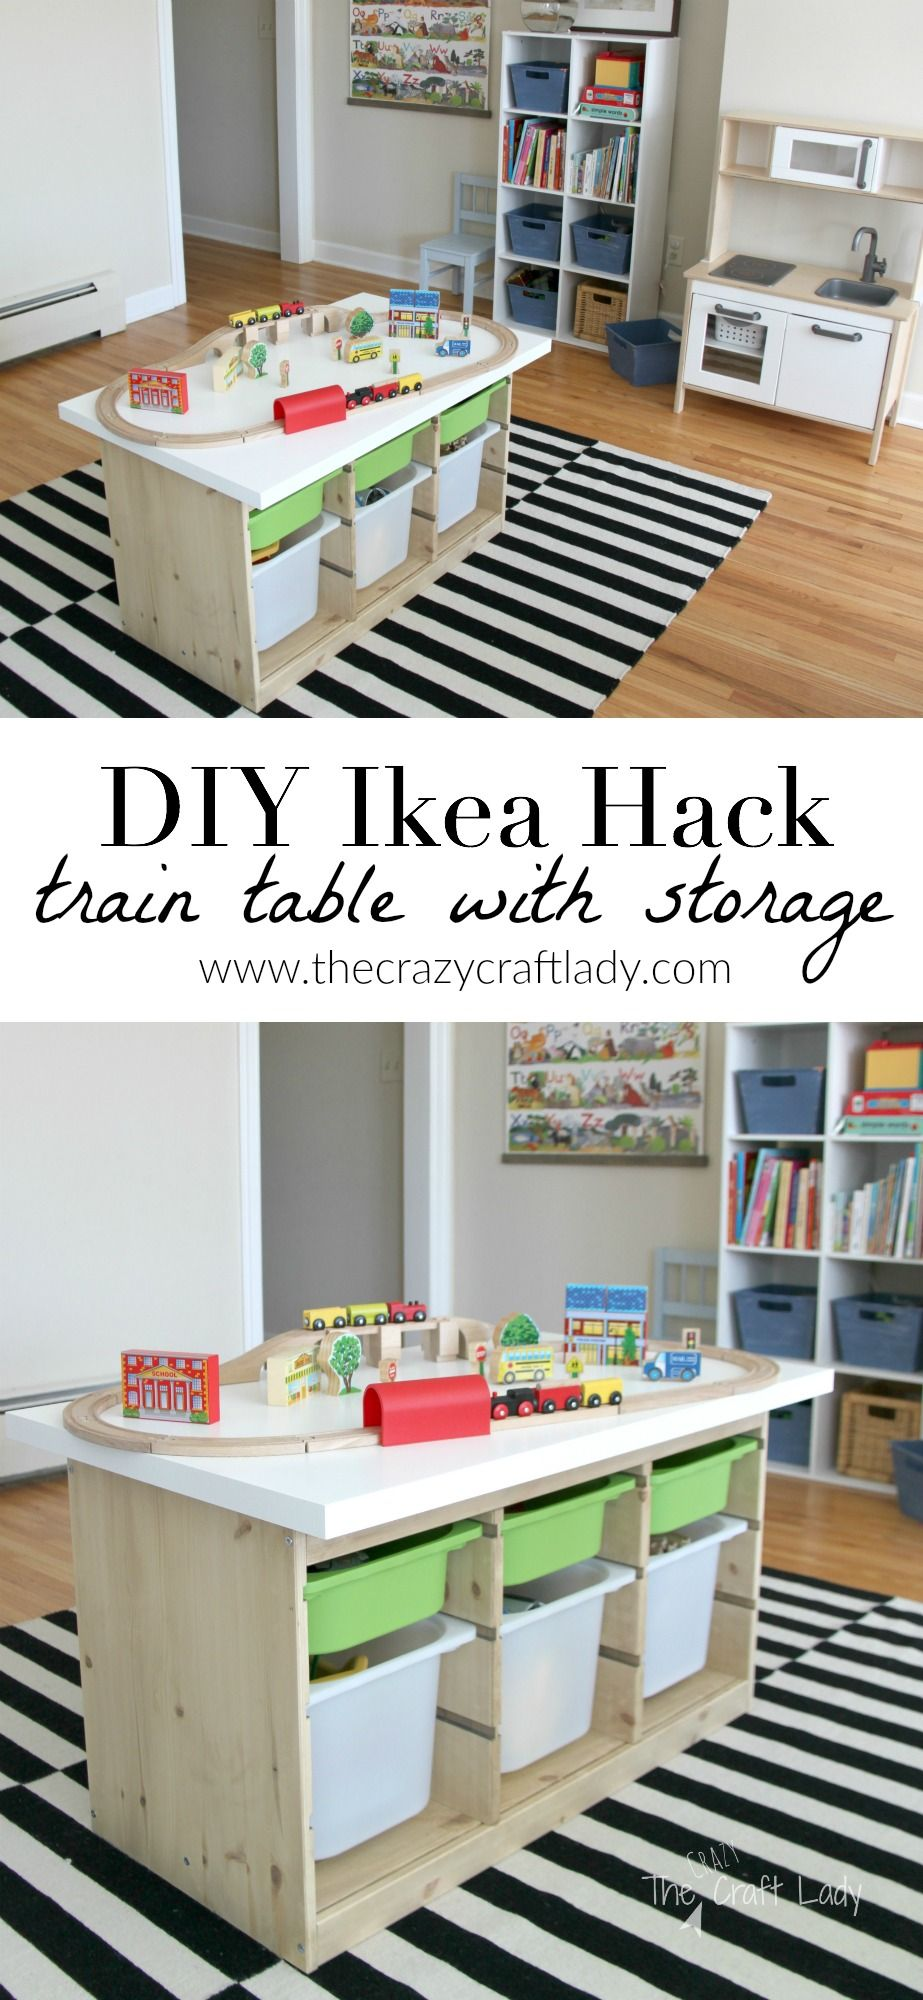 an ikea hack train activity table ikea hack trofast regal pinterest kinderzimmer. Black Bedroom Furniture Sets. Home Design Ideas